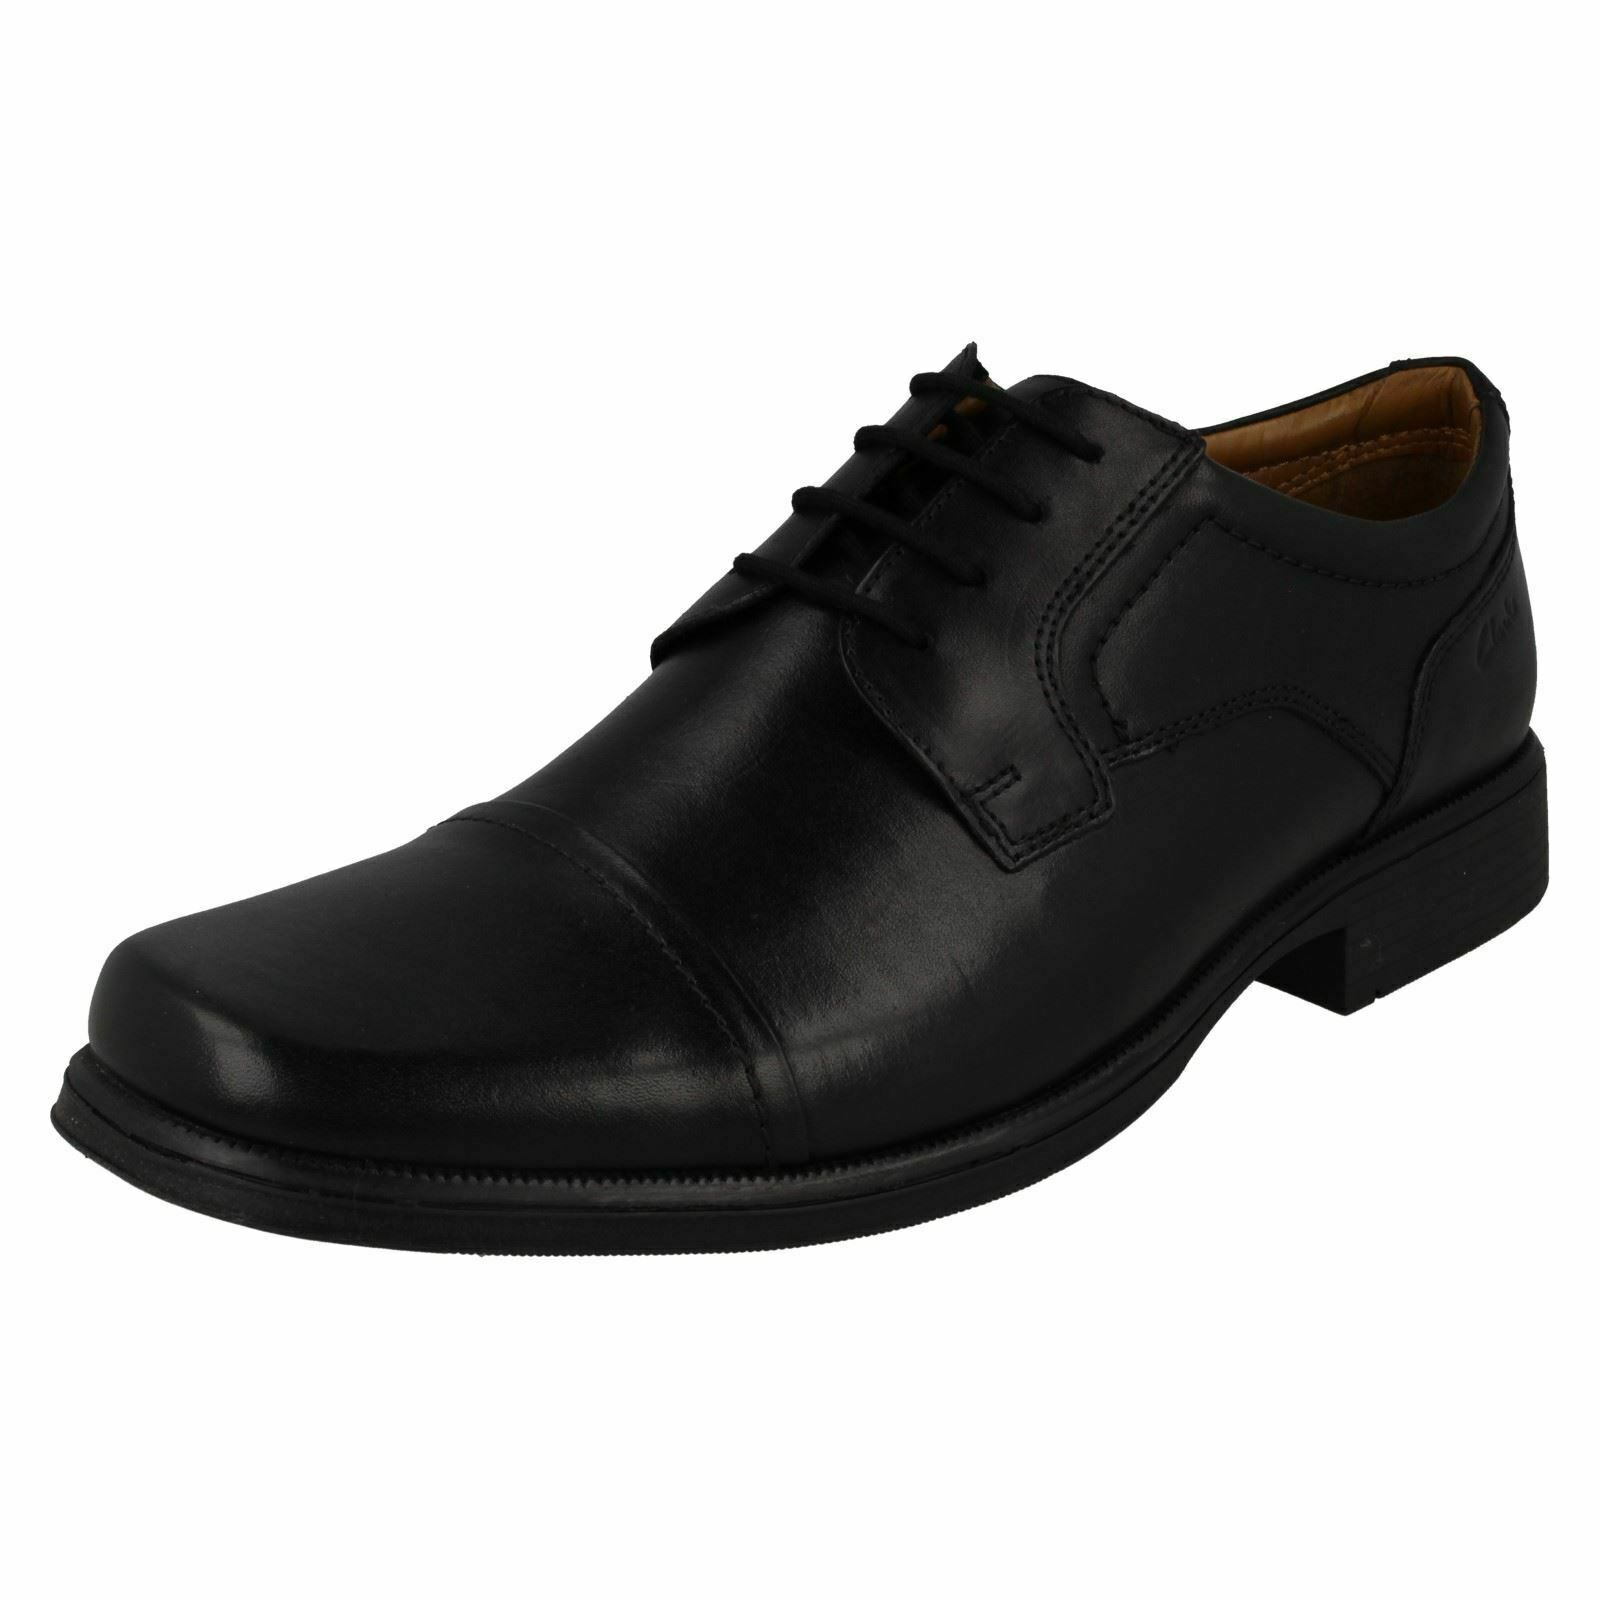 Men's Clarks Formal Lace-Up shoes - Huckley Cap